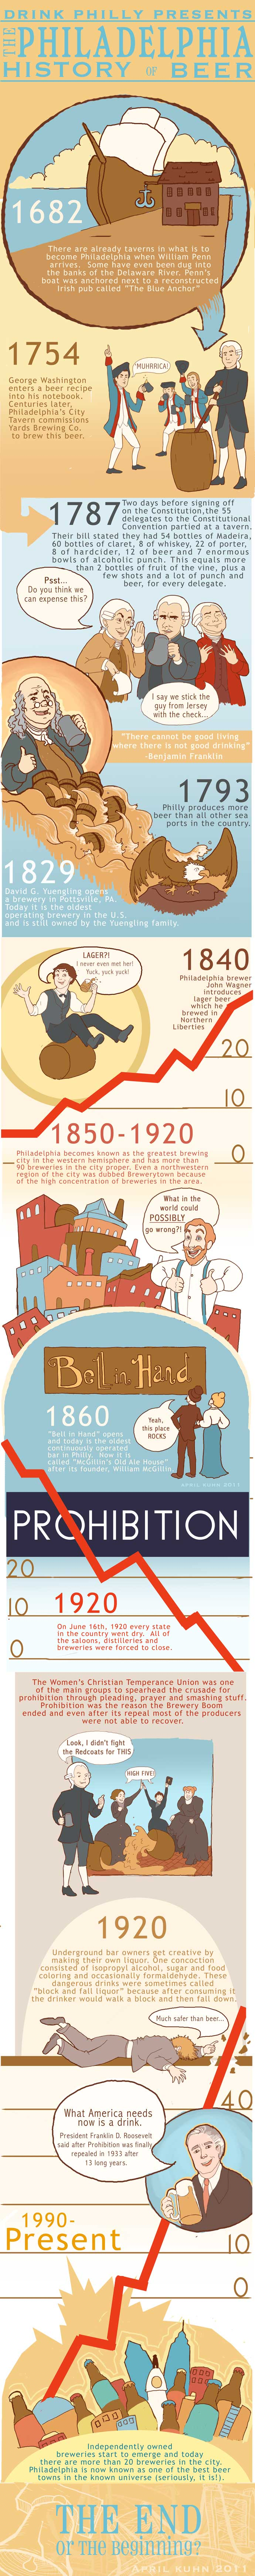 philadelphia-history-of-beer